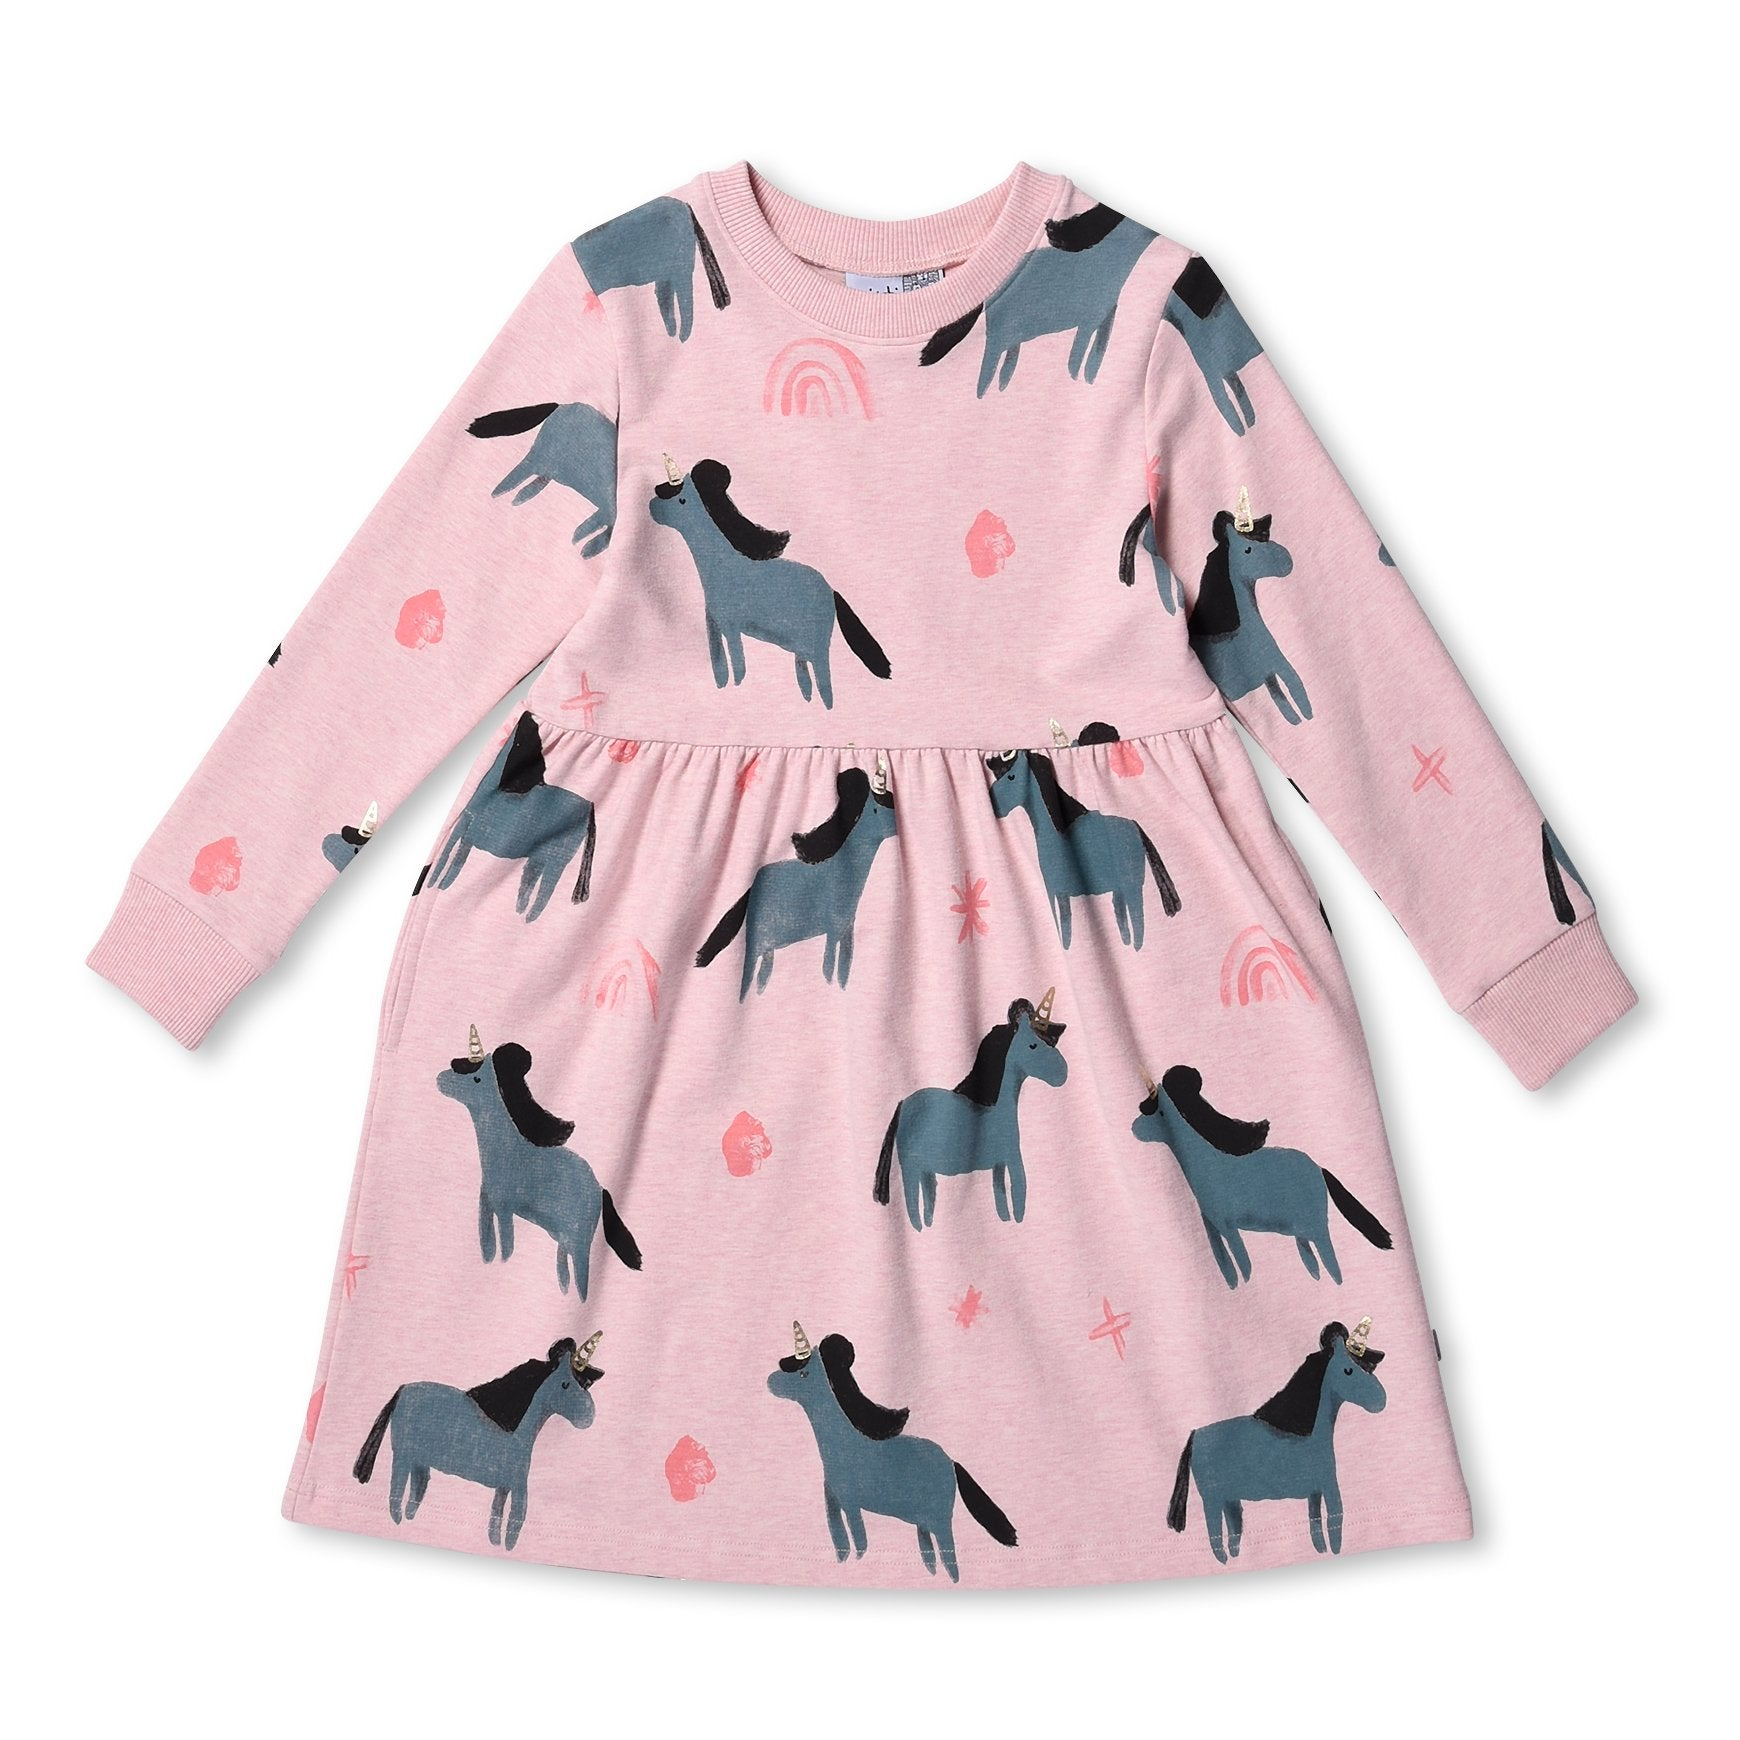 MINTI - MAGICAL JUMPER DRESS - PINK MARLE